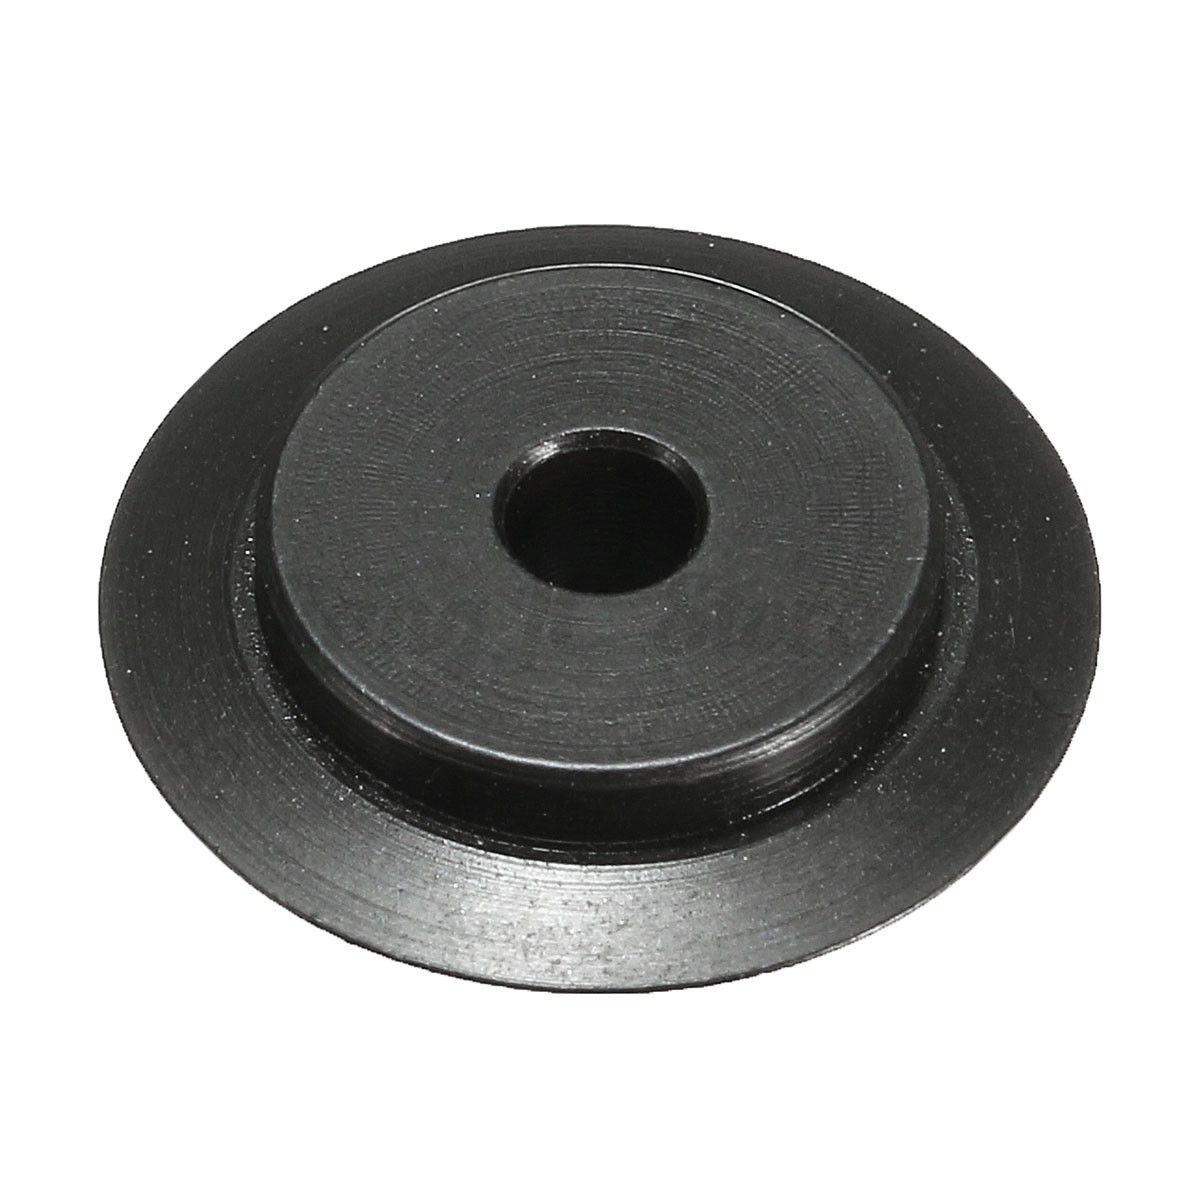 Pipe Cutter Replacement Wheels : Replacement spare pipe slice blade cutting wheel disc for